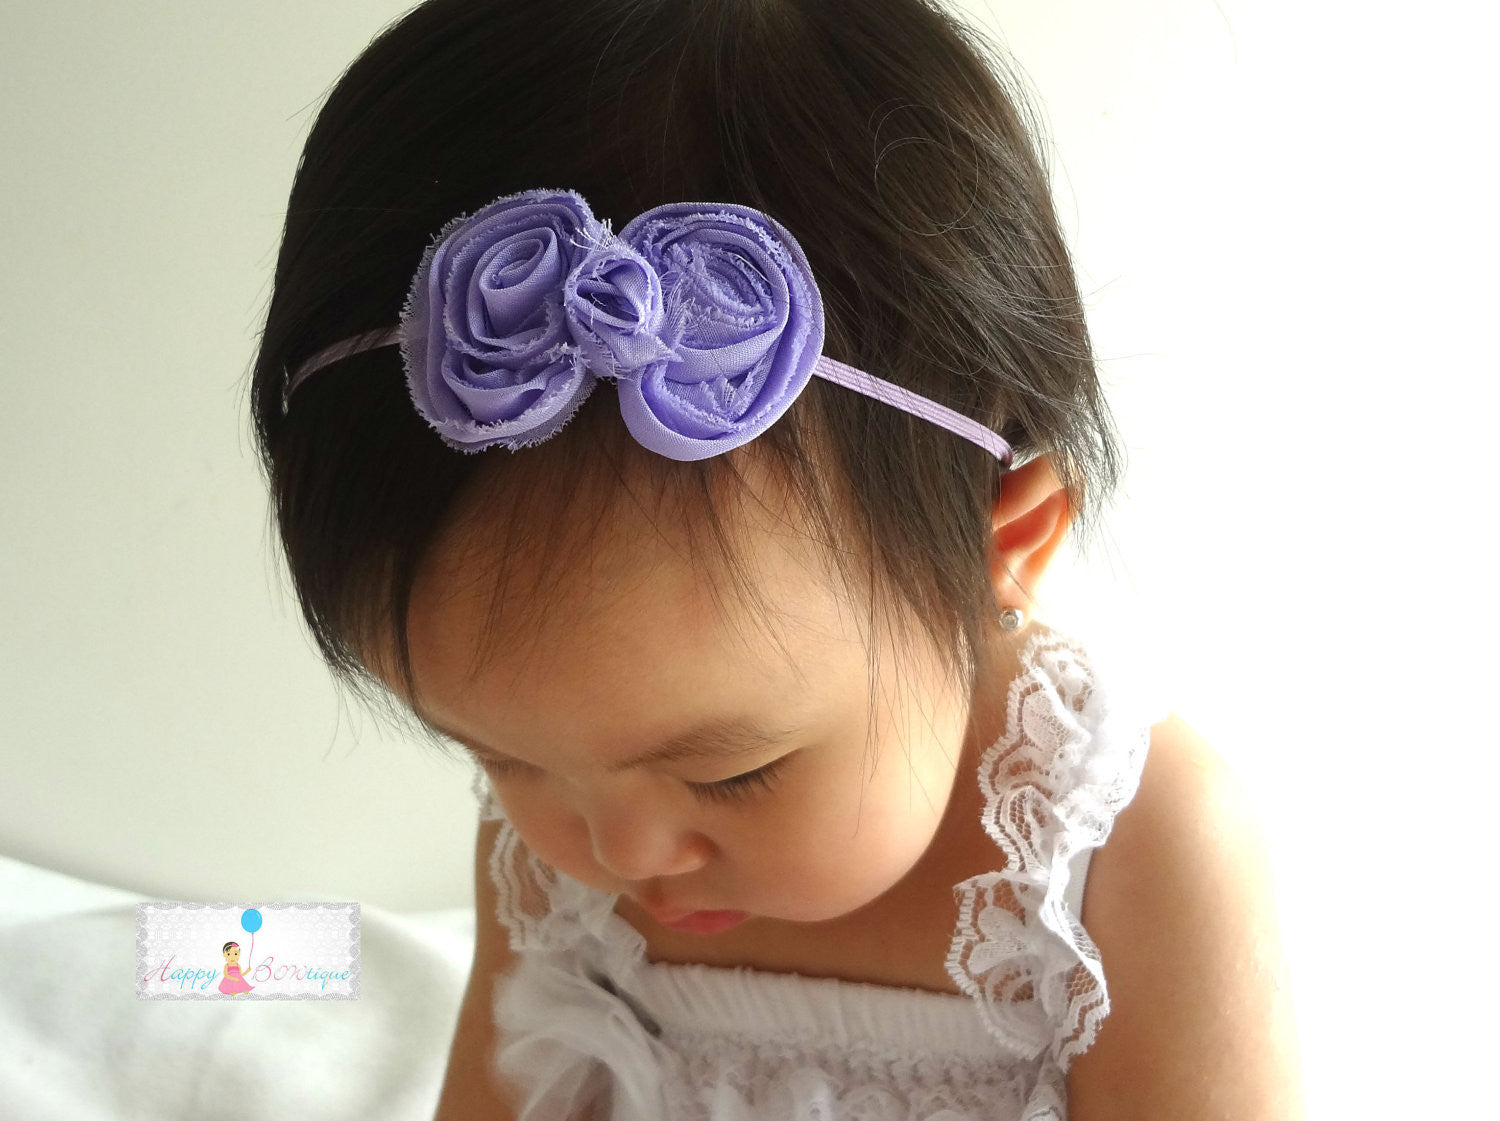 Petite Chiffon Floral Peacock Bow Headband - Happy BOWtique - children's clothing, Baby Girl clothing